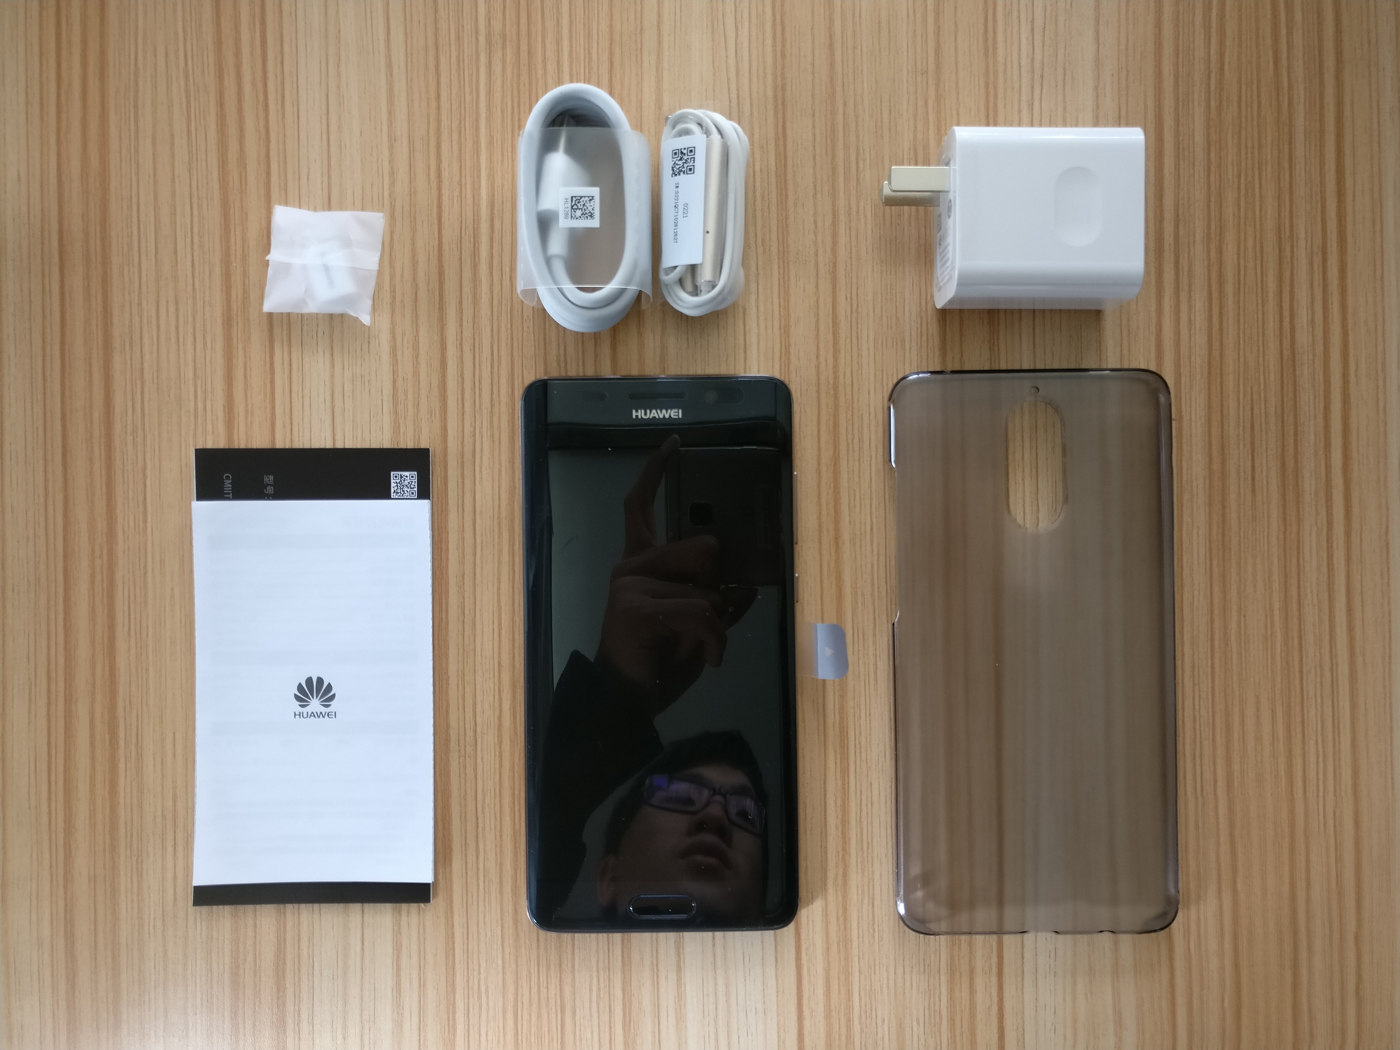 To2c Blog Huawei Mate 9 PRO Real Life Images